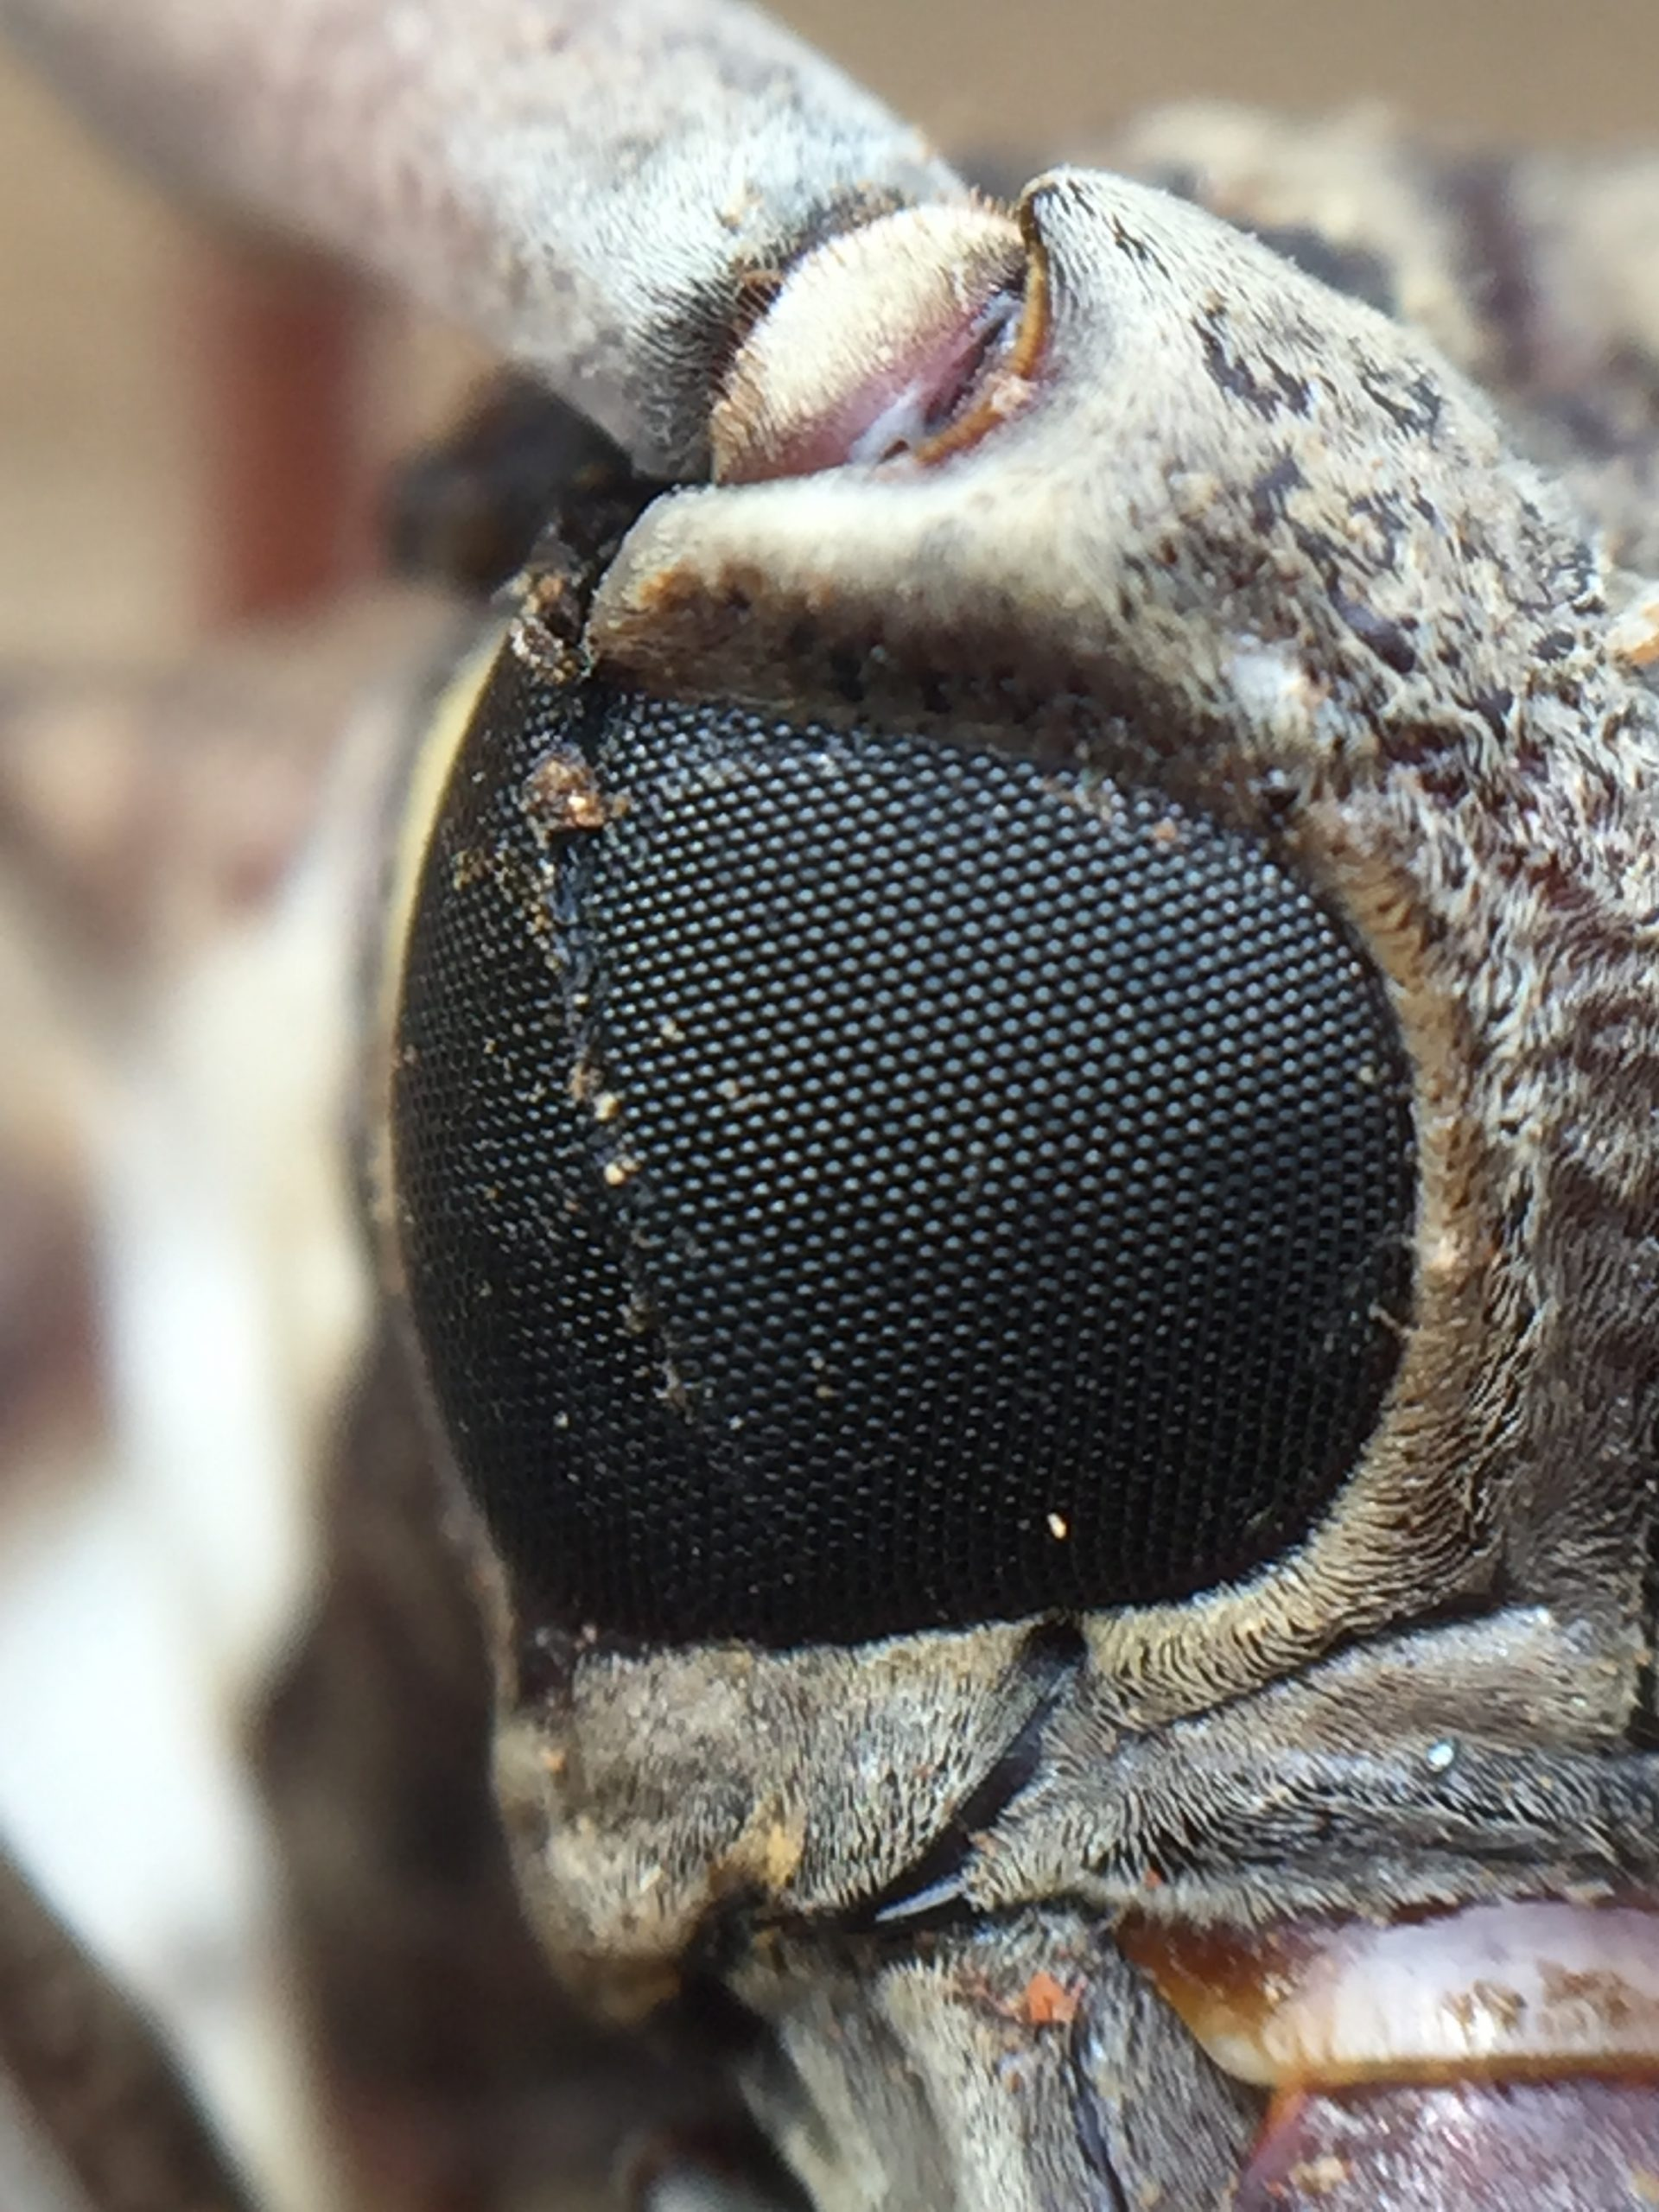 Eye of an artificial insect